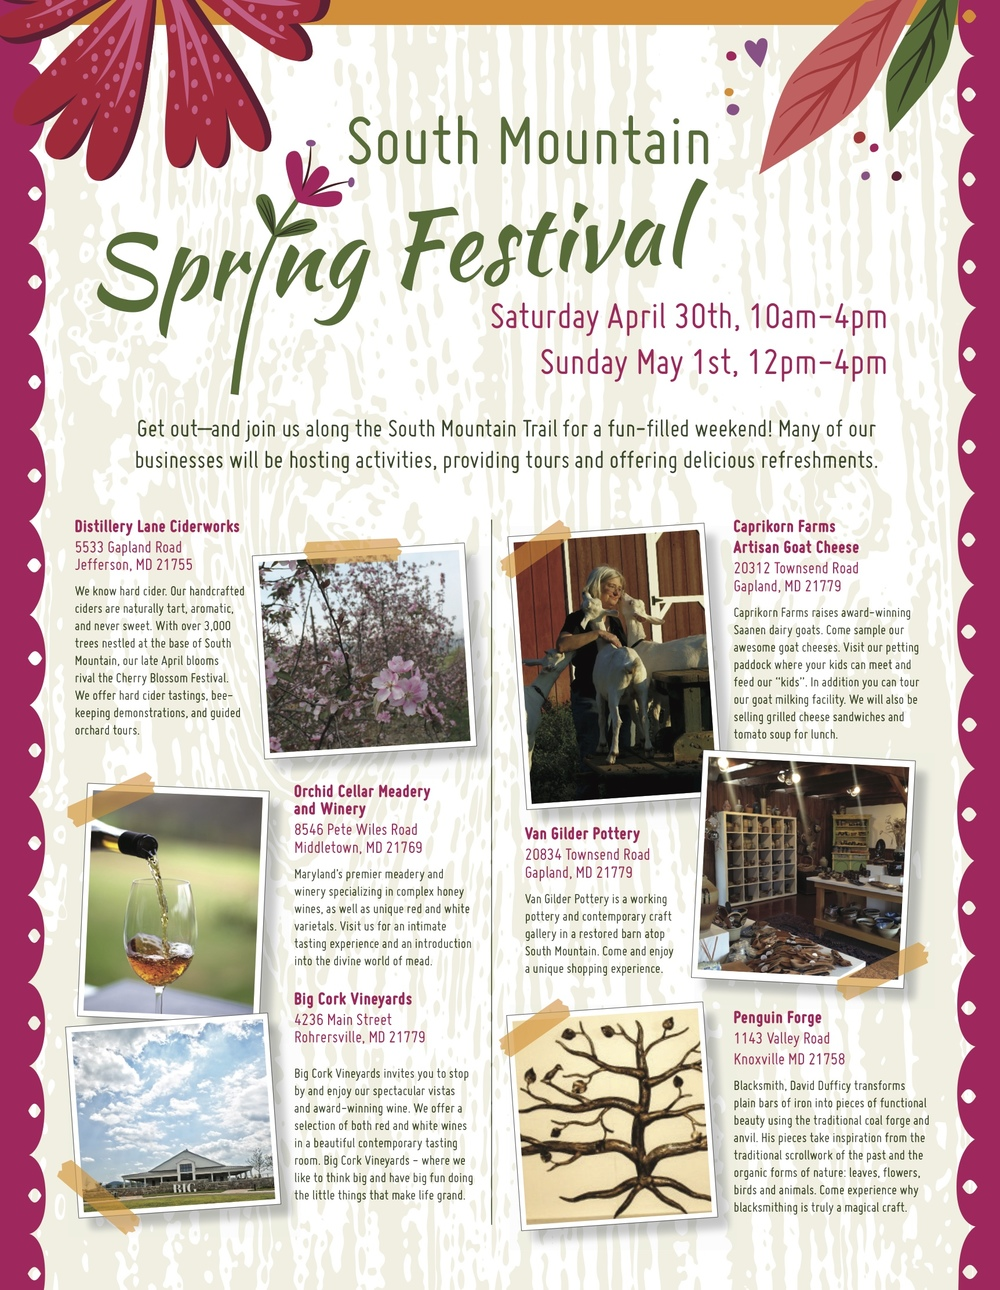 South Mountain Spring Festival Flyer